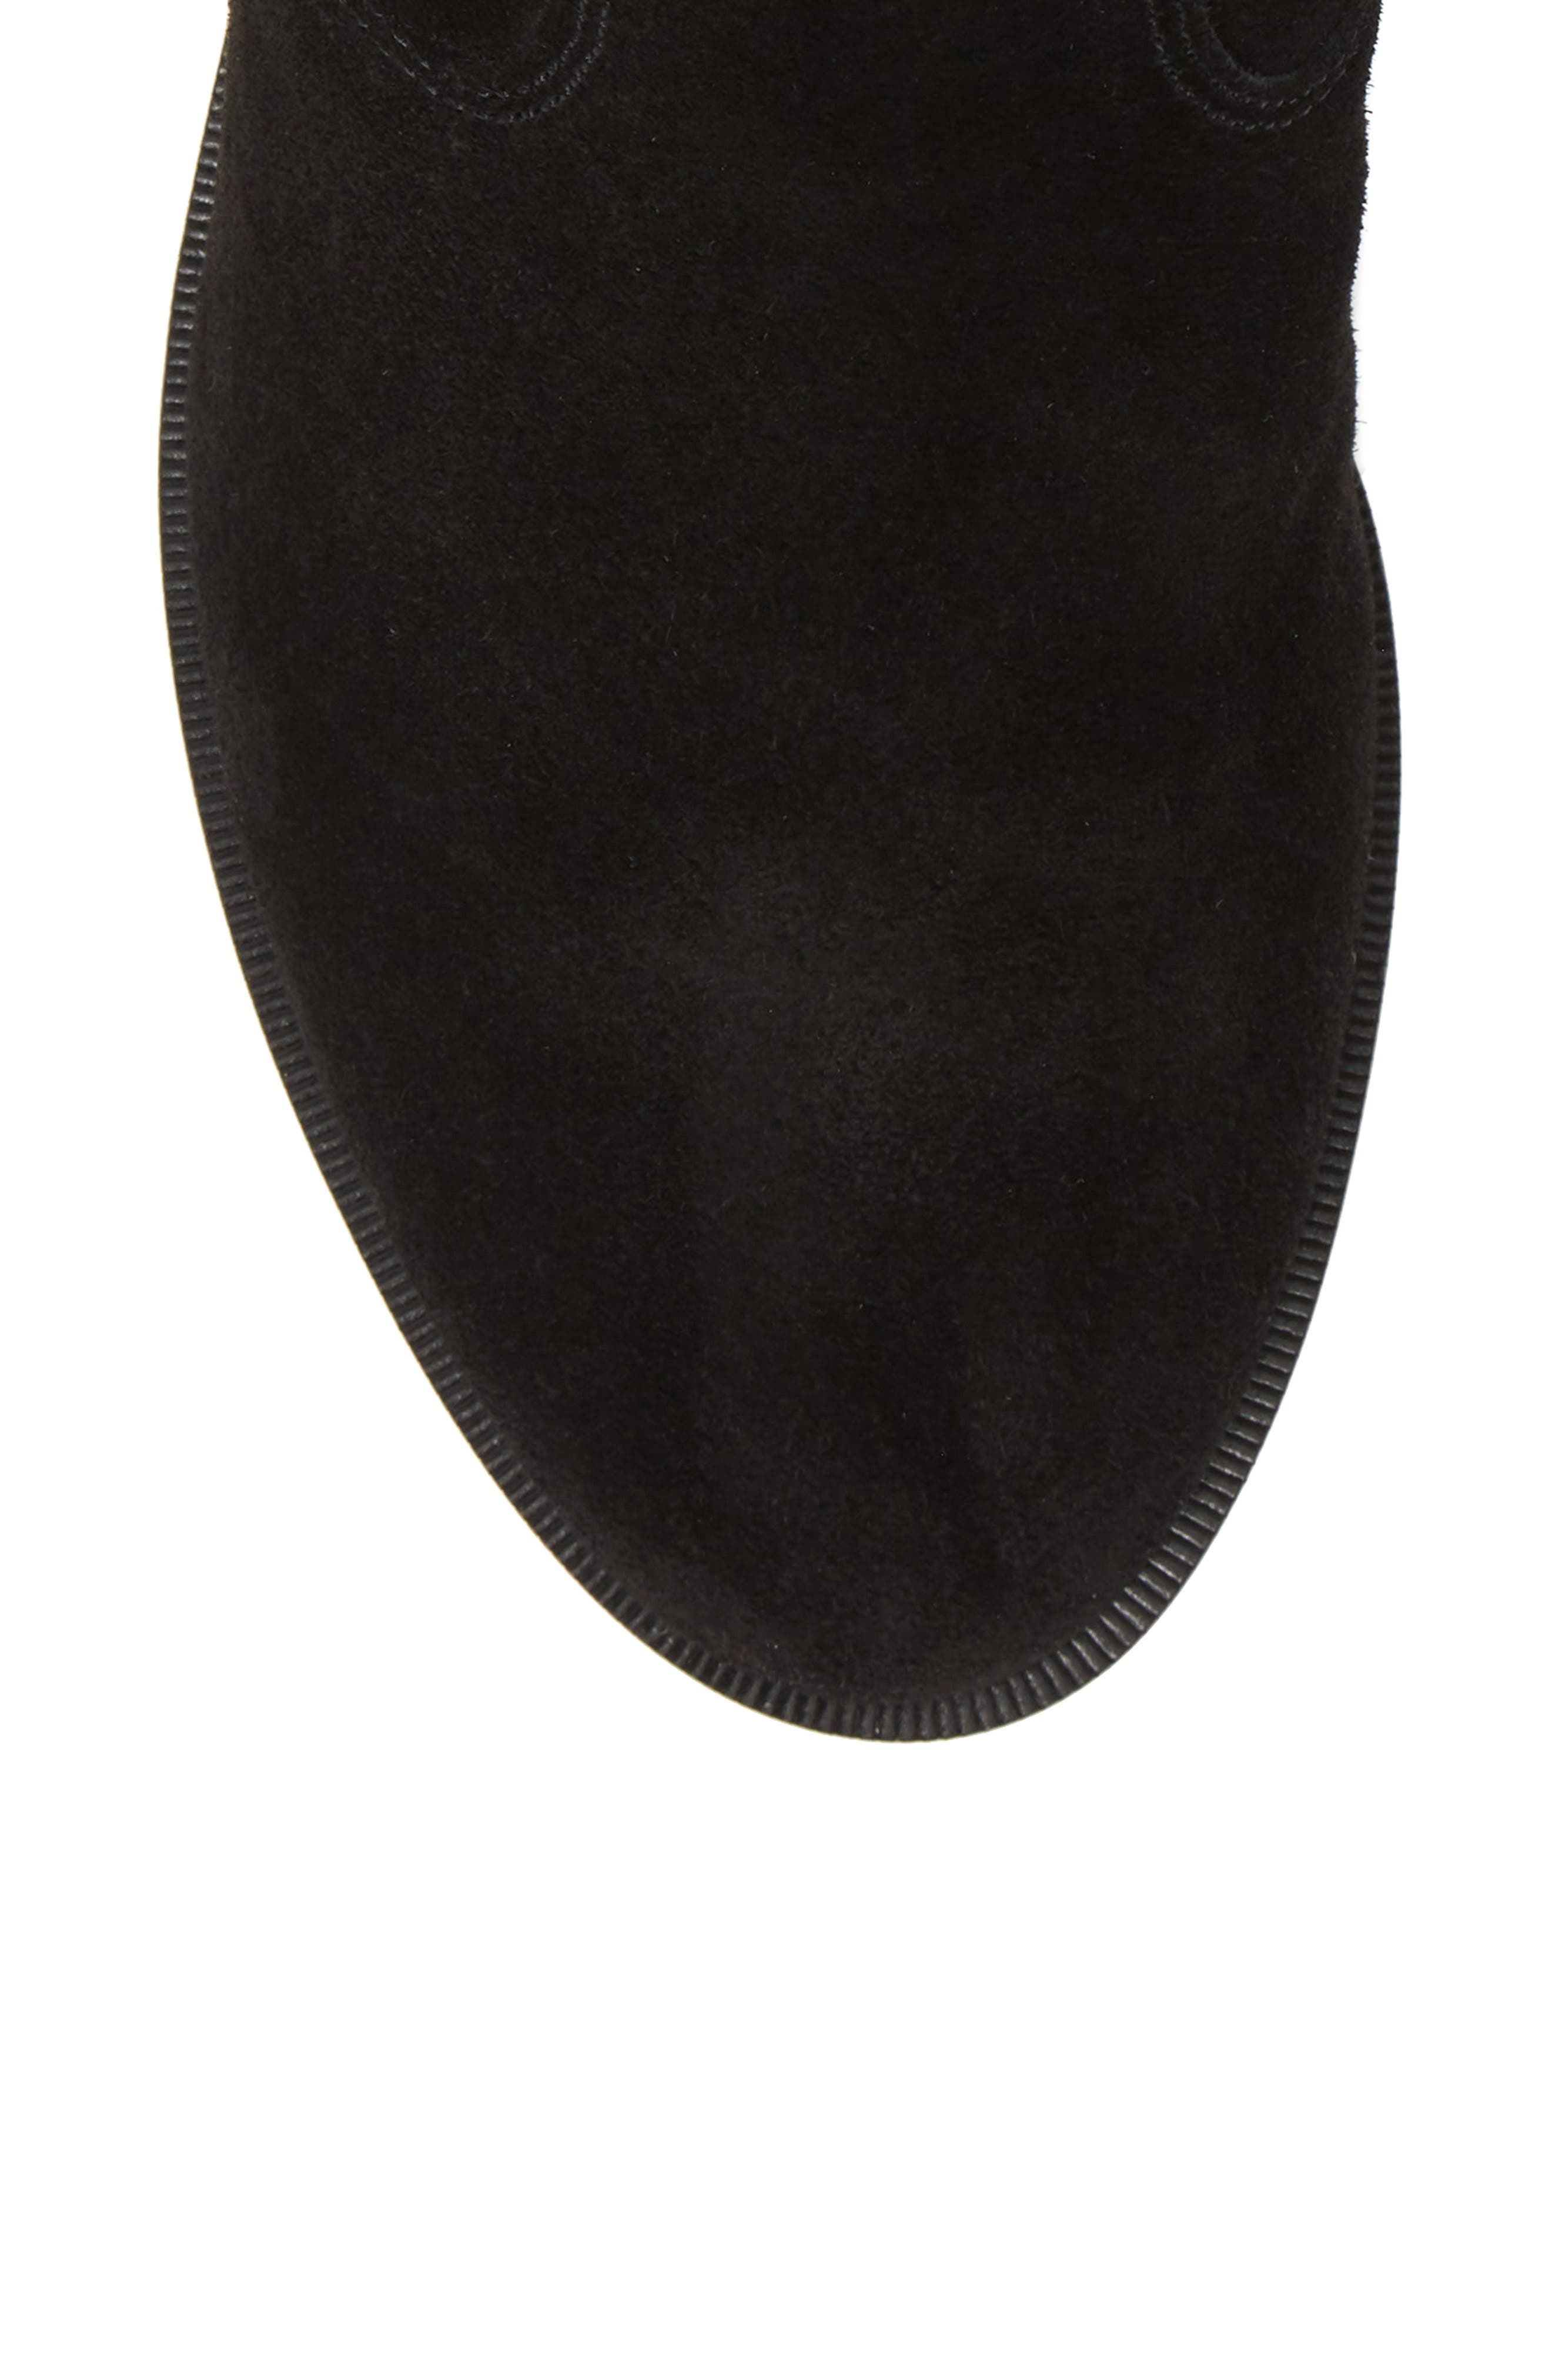 Chasidy Bootie,                             Alternate thumbnail 5, color,                             BLACK SUEDE